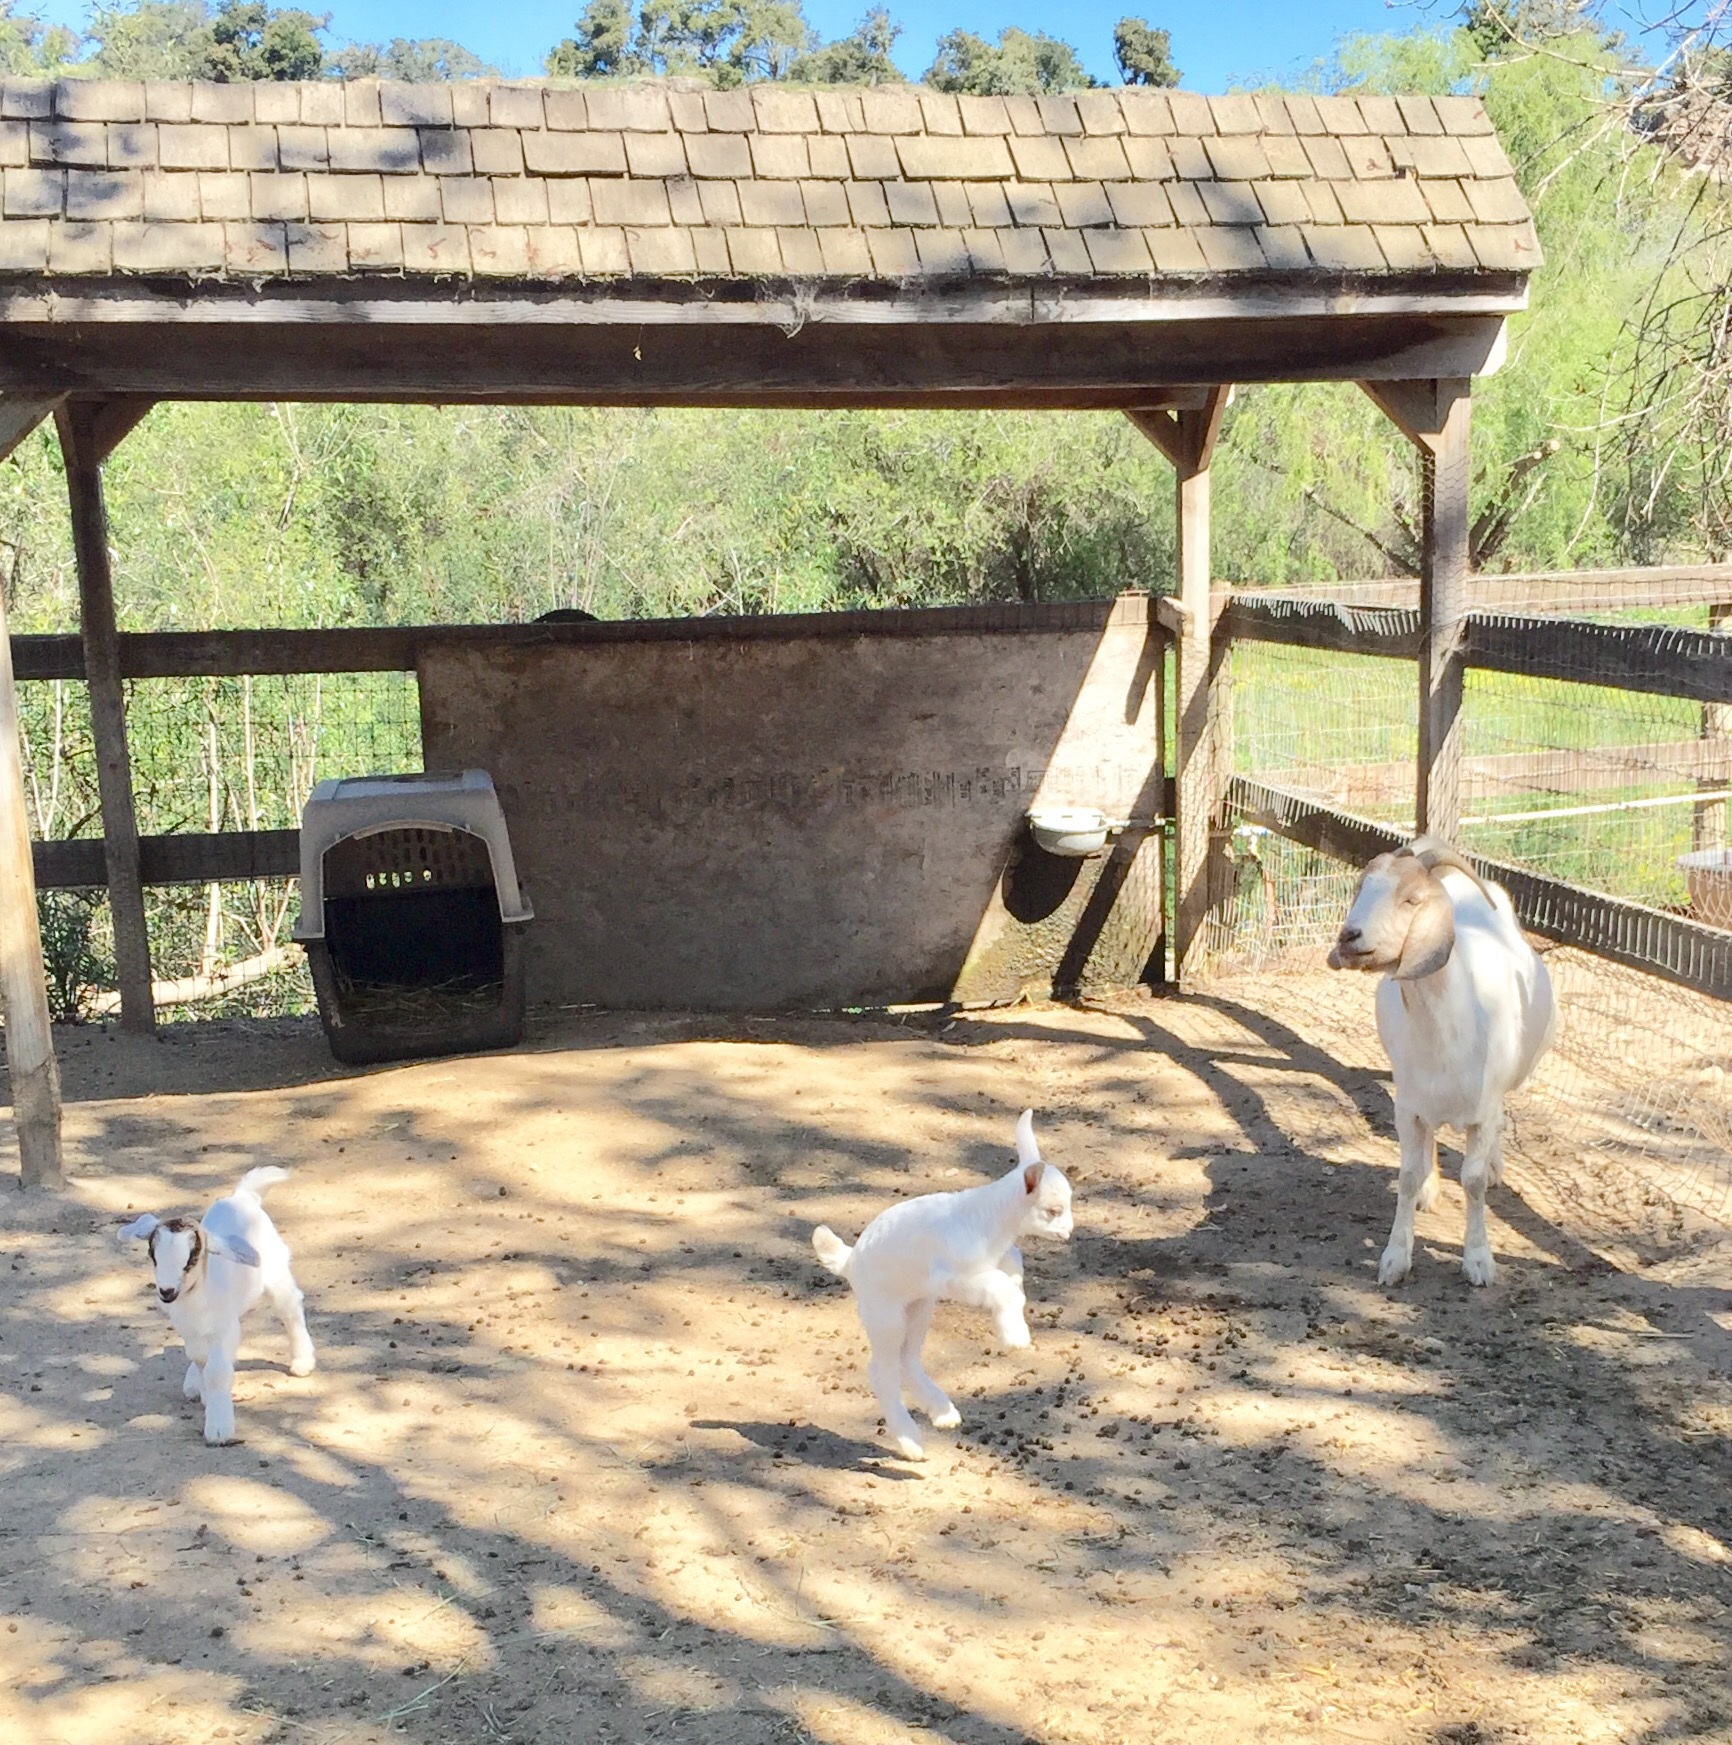 White mama goat and her two babies inside their pen at Avila Valley Barn in San Luis Obispo.